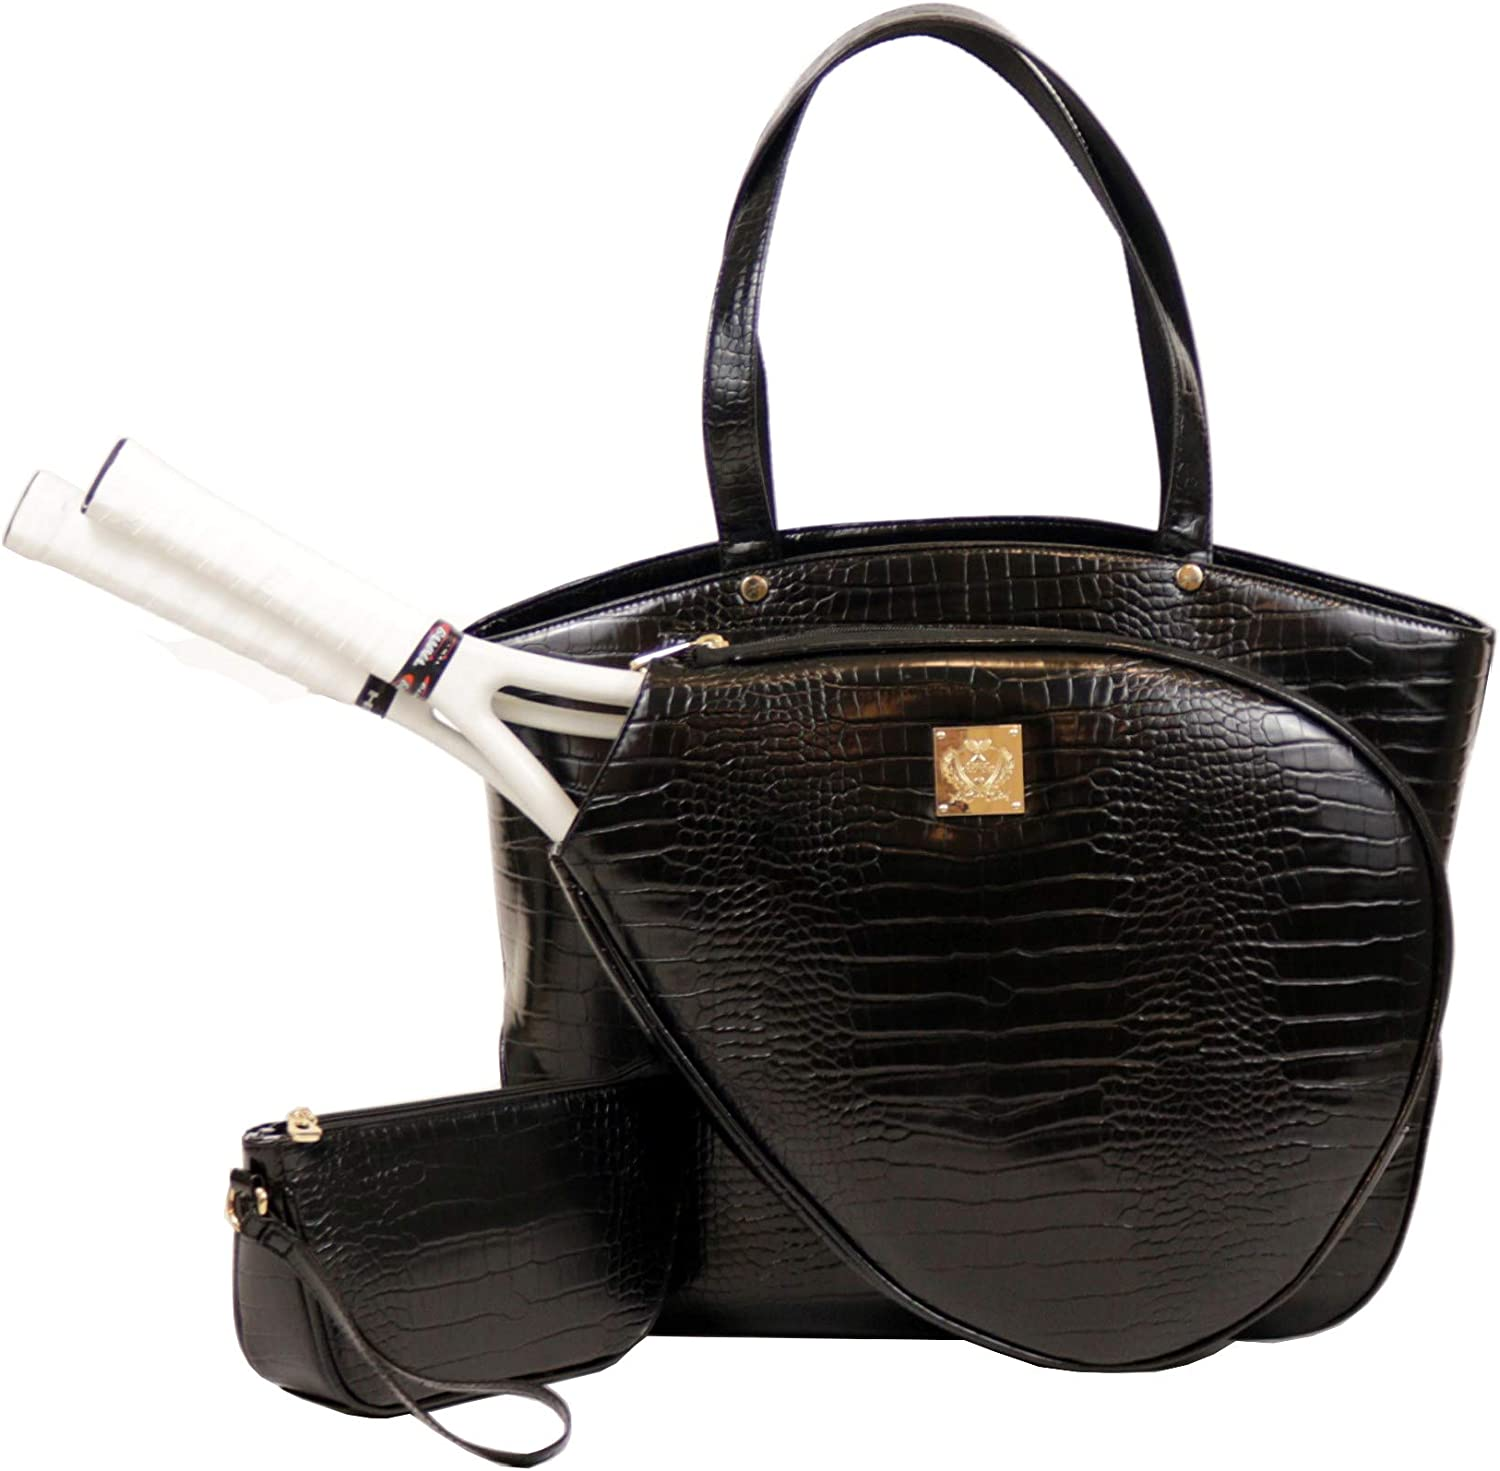 Court Couture Max 68% OFF Cassanova Crocodile Embossed Bag High quality new Noir Tennis